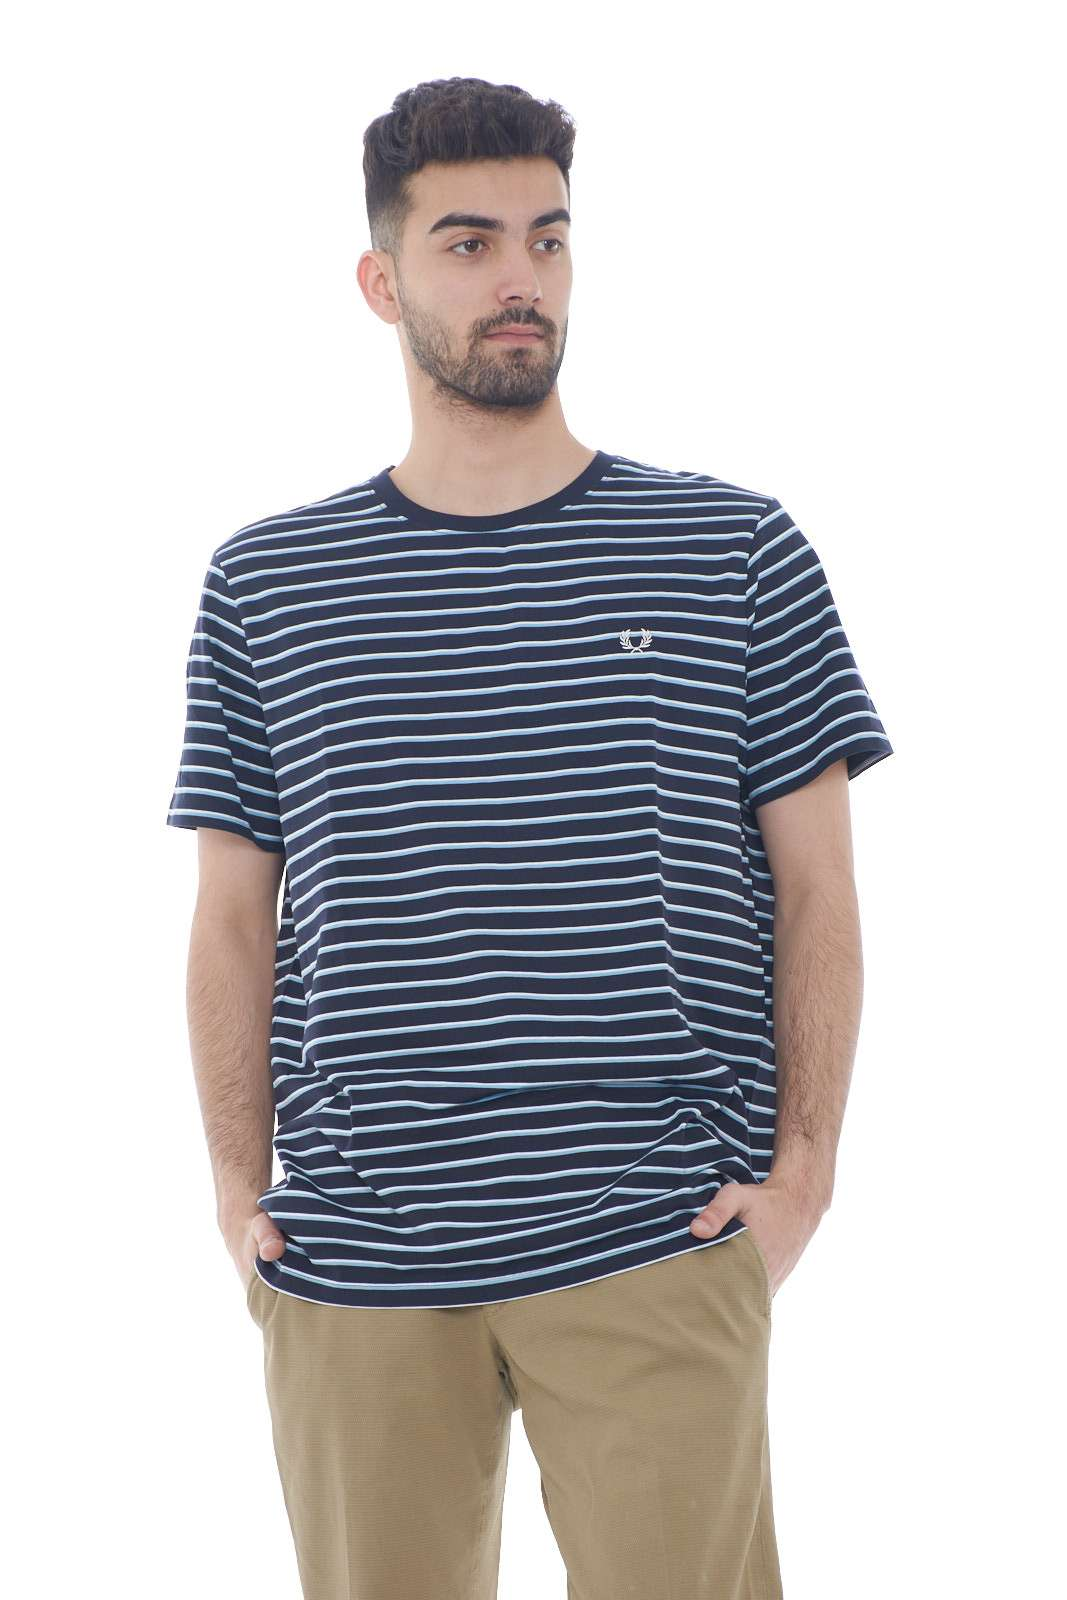 https://www.parmax.com/media/catalog/product/a/i/PE-outlet_parmax-t-shirt-uomo-Fred-Perry-M5573-A.jpg